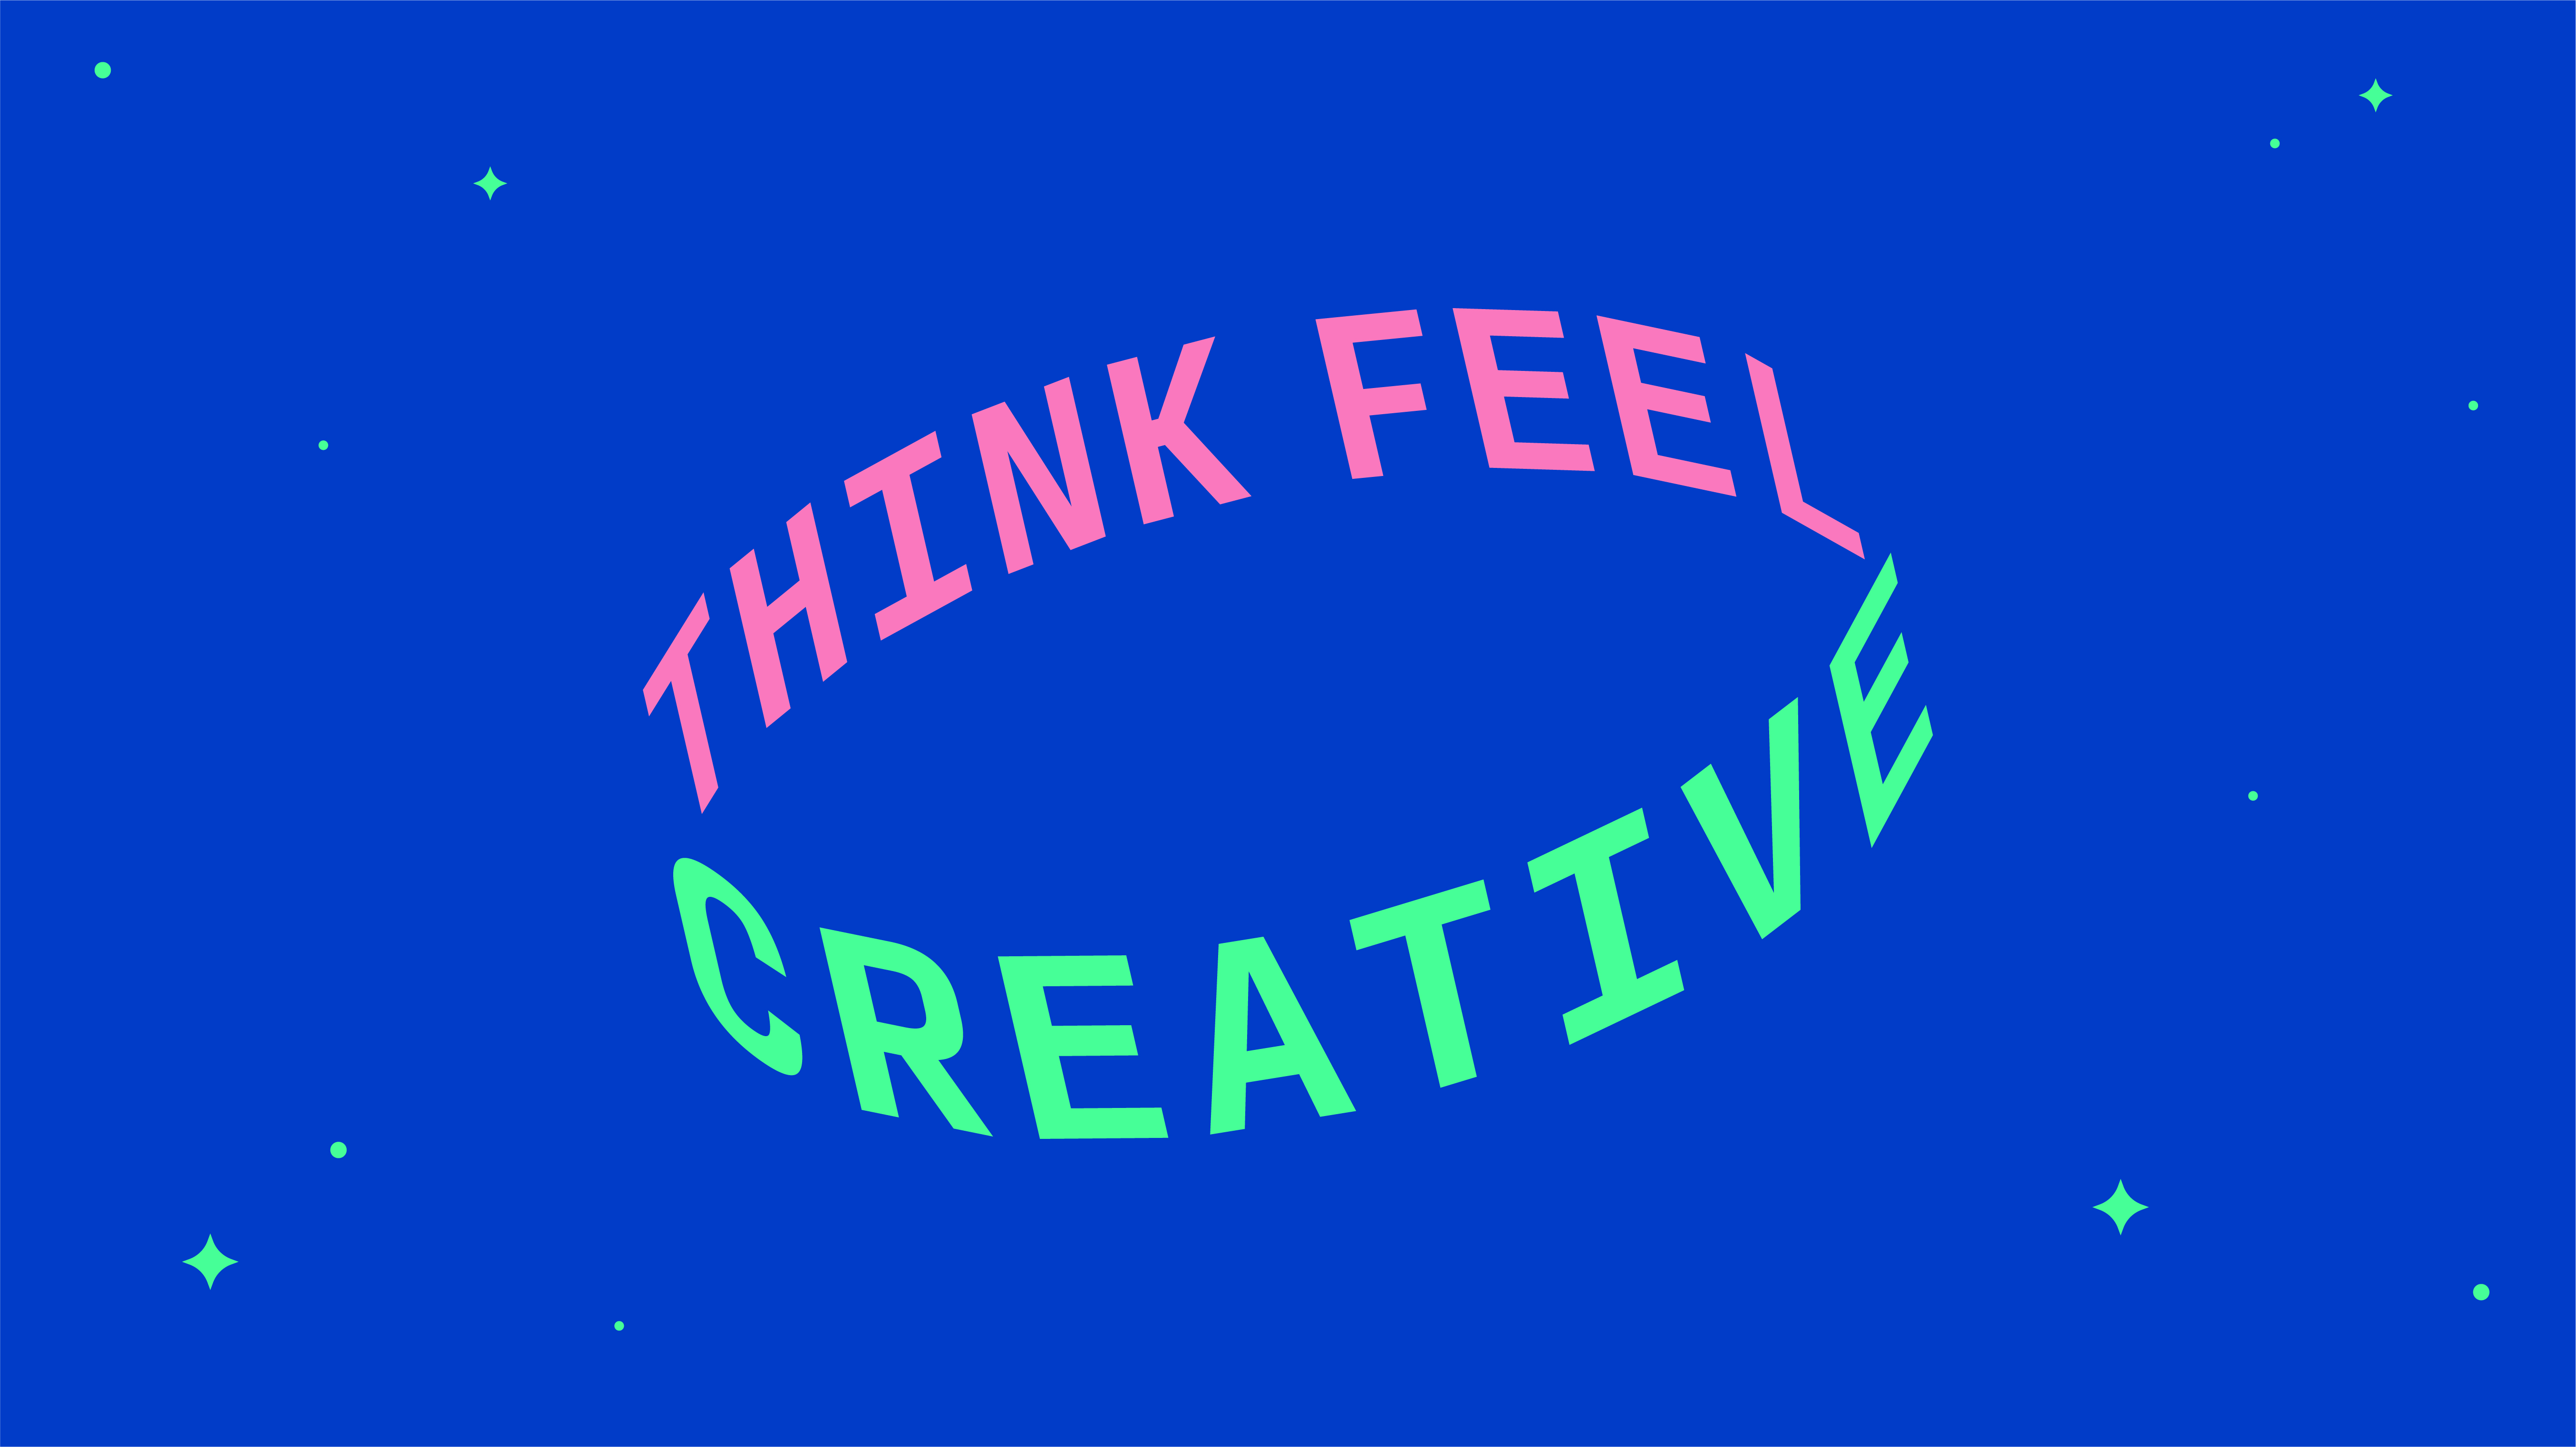 Kingdom & Sparrow Supporting Mental Health for Creatives with Think Feel Creative Campaign